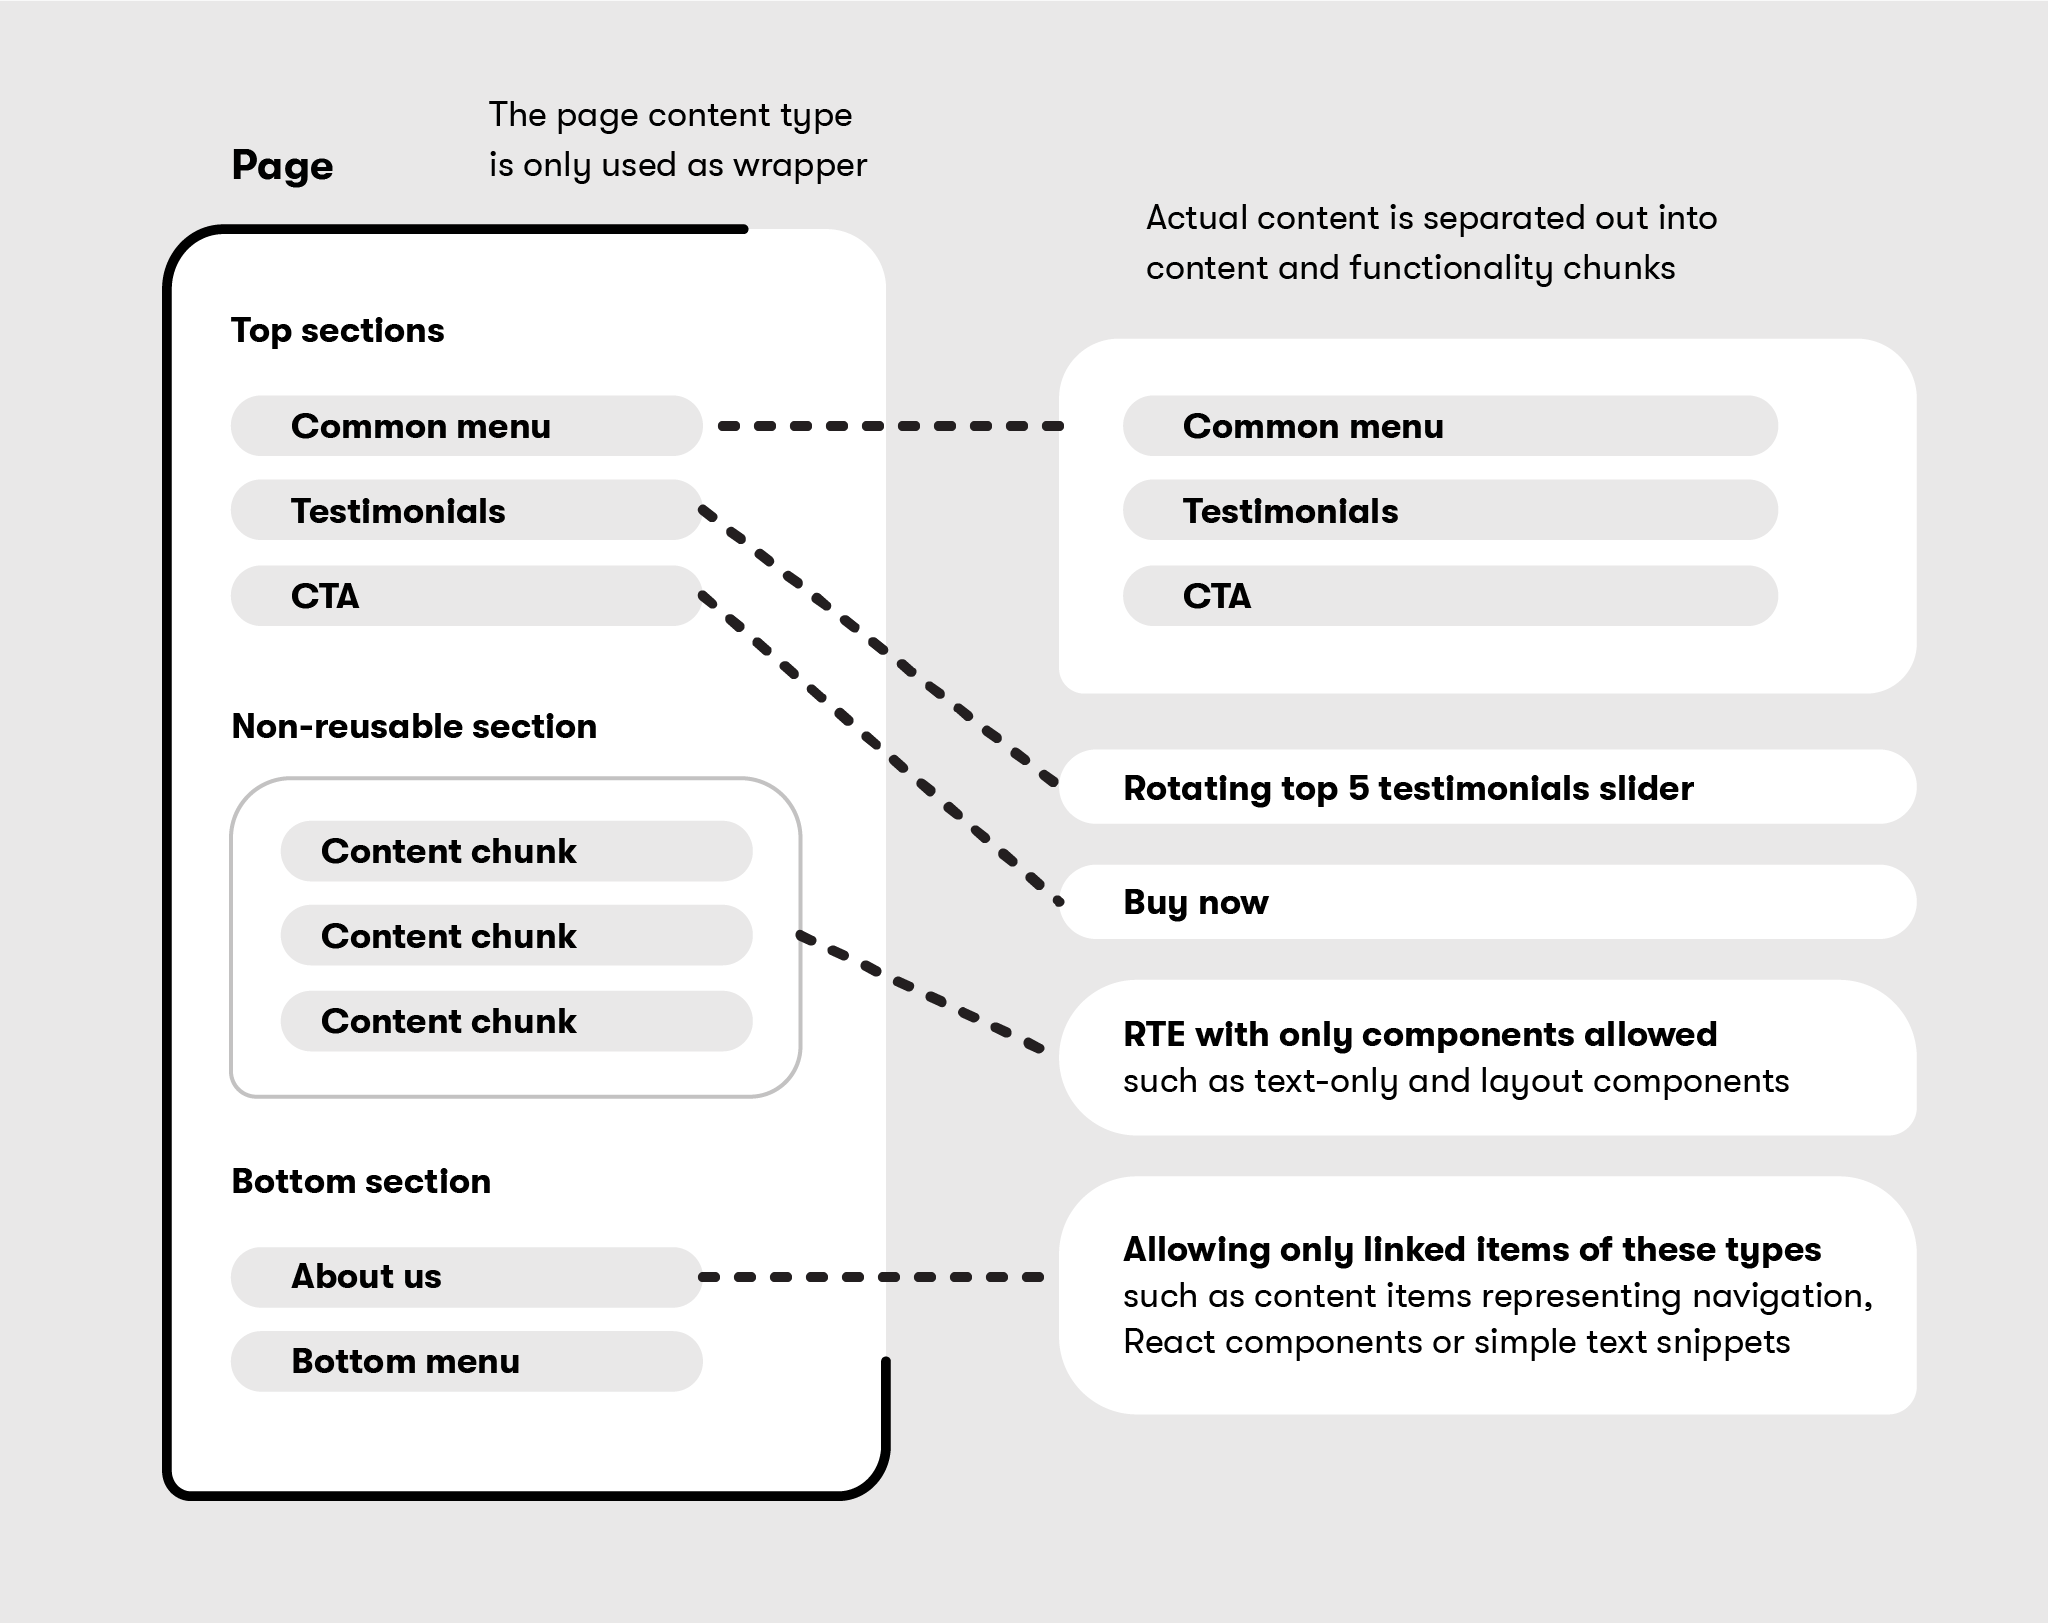 Separation of layout, content, and functionality in a content model.